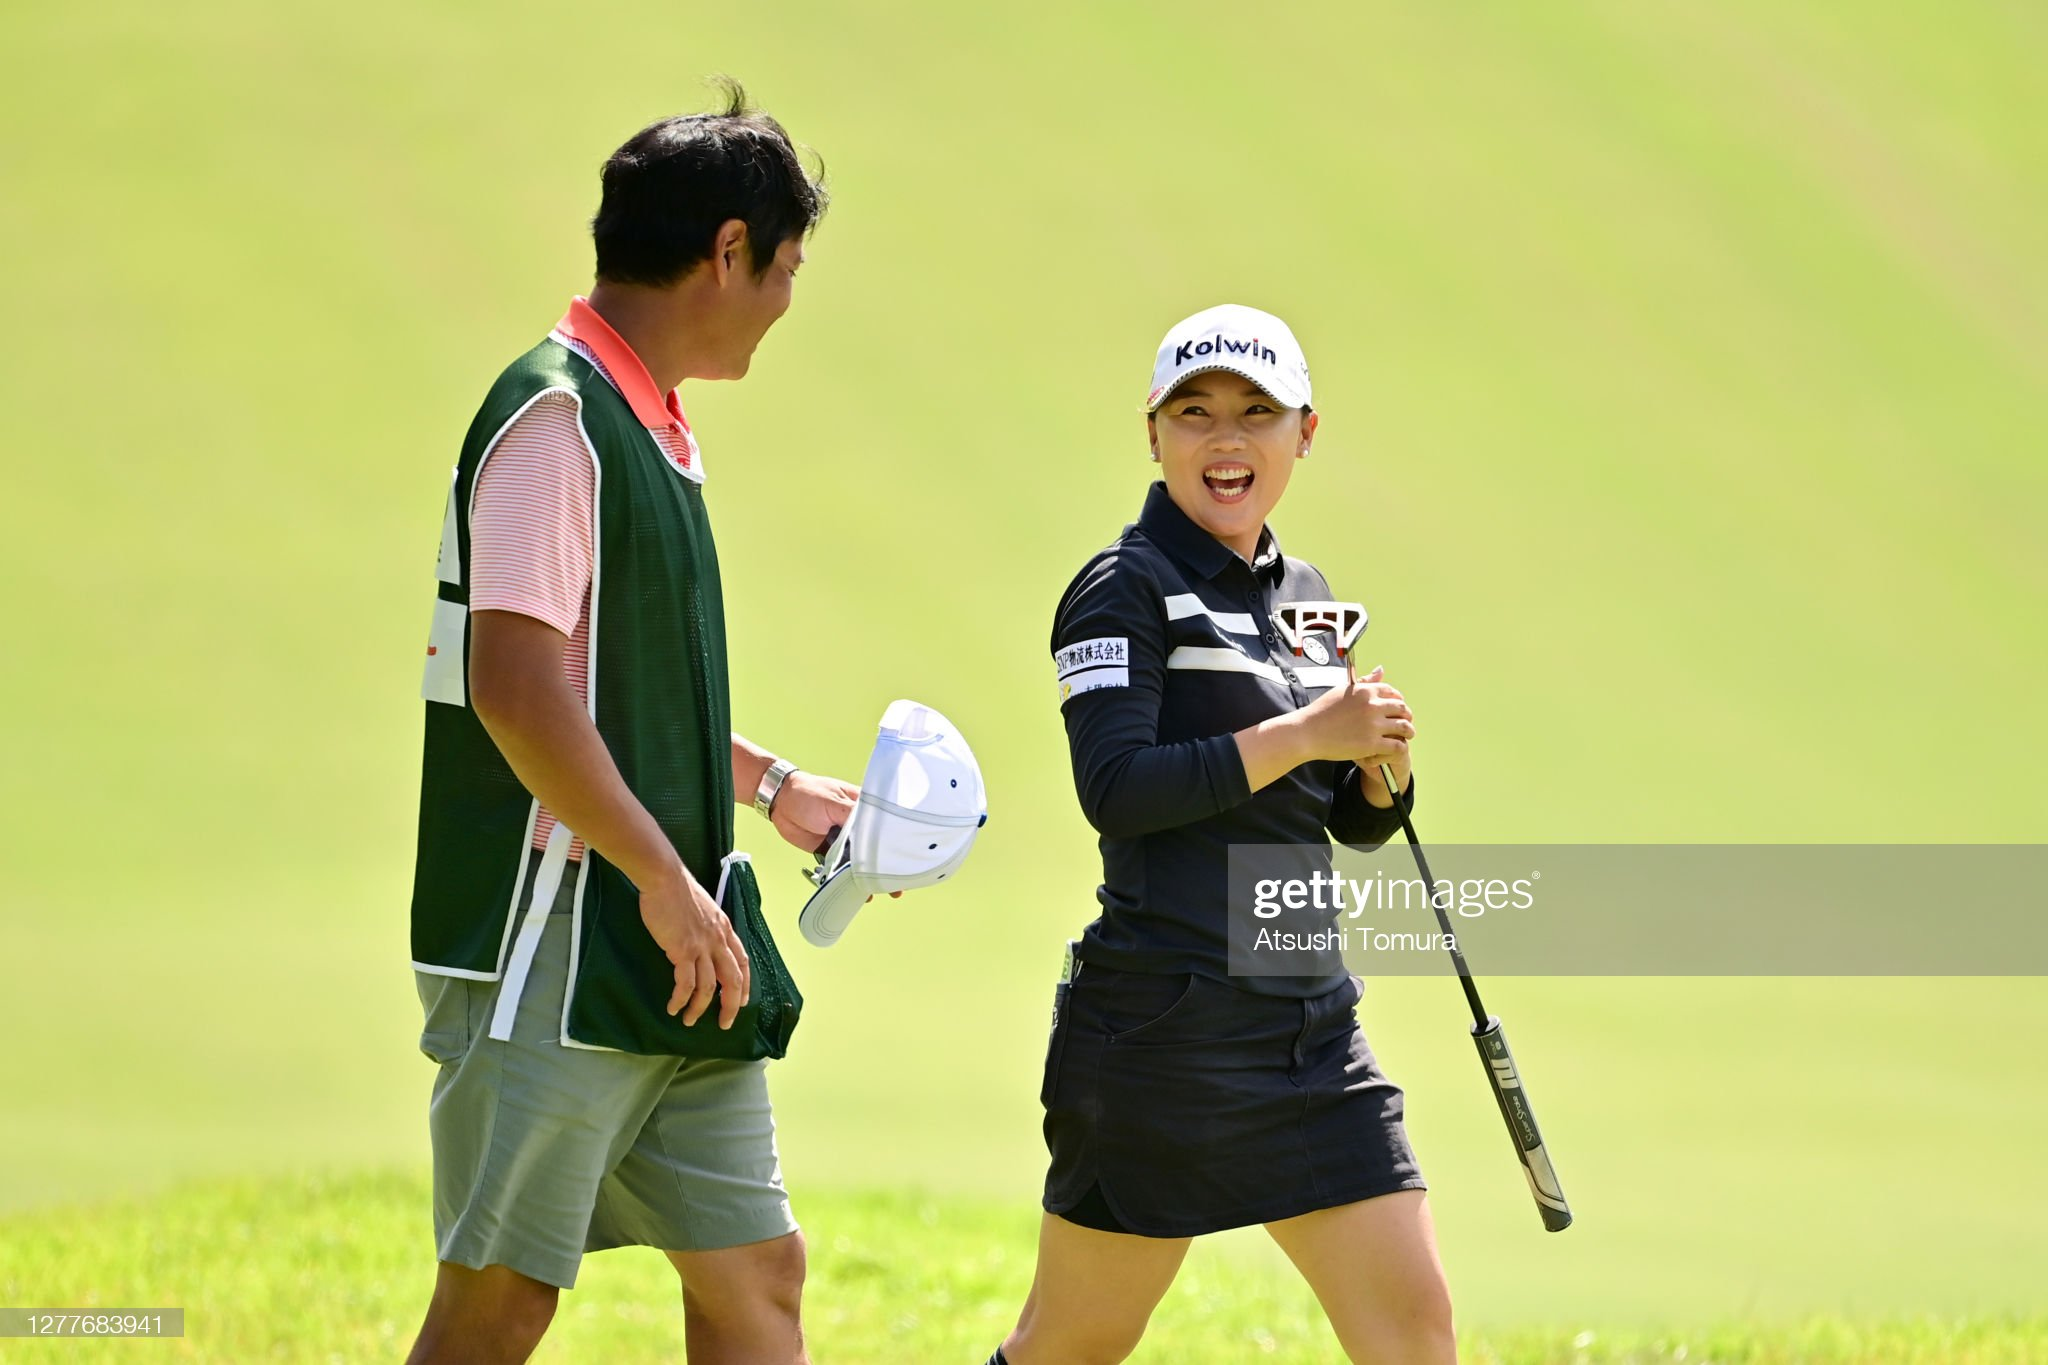 https://media.gettyimages.com/photos/nari-lee-of-south-korea-smiles-after-holing-out-on-the-9th-green-the-picture-id1277683941?s=2048x2048